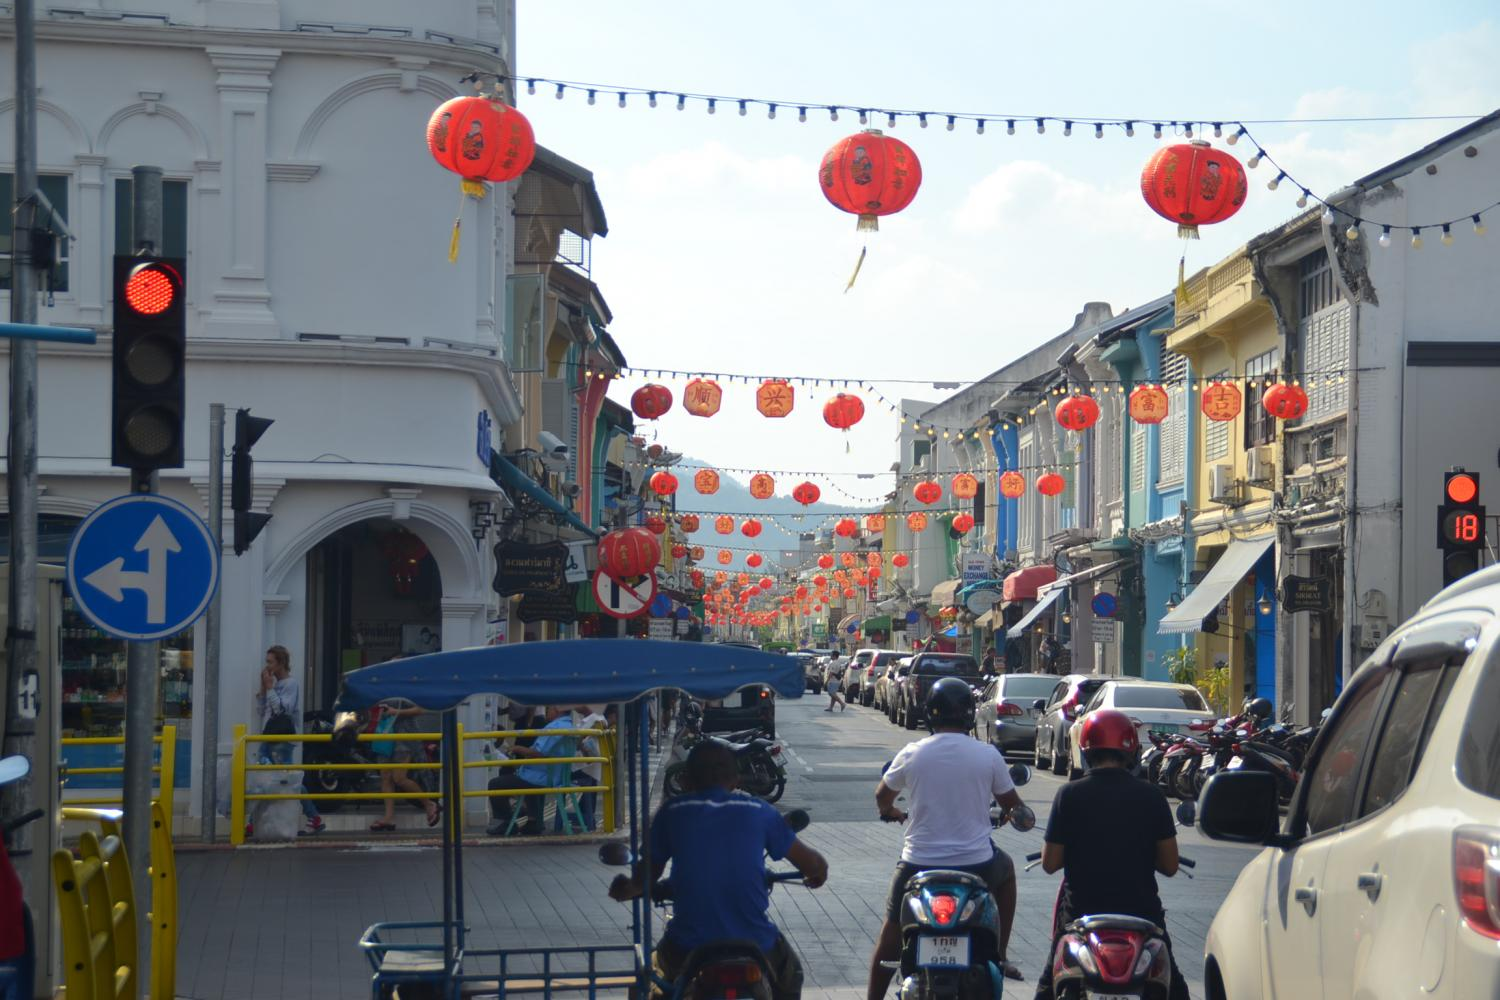 Lanterns decorate Phuket during Chinese New Year as the southern province welcomes an uptick in tourist arrivals from China. Achadtaya Chuenniran